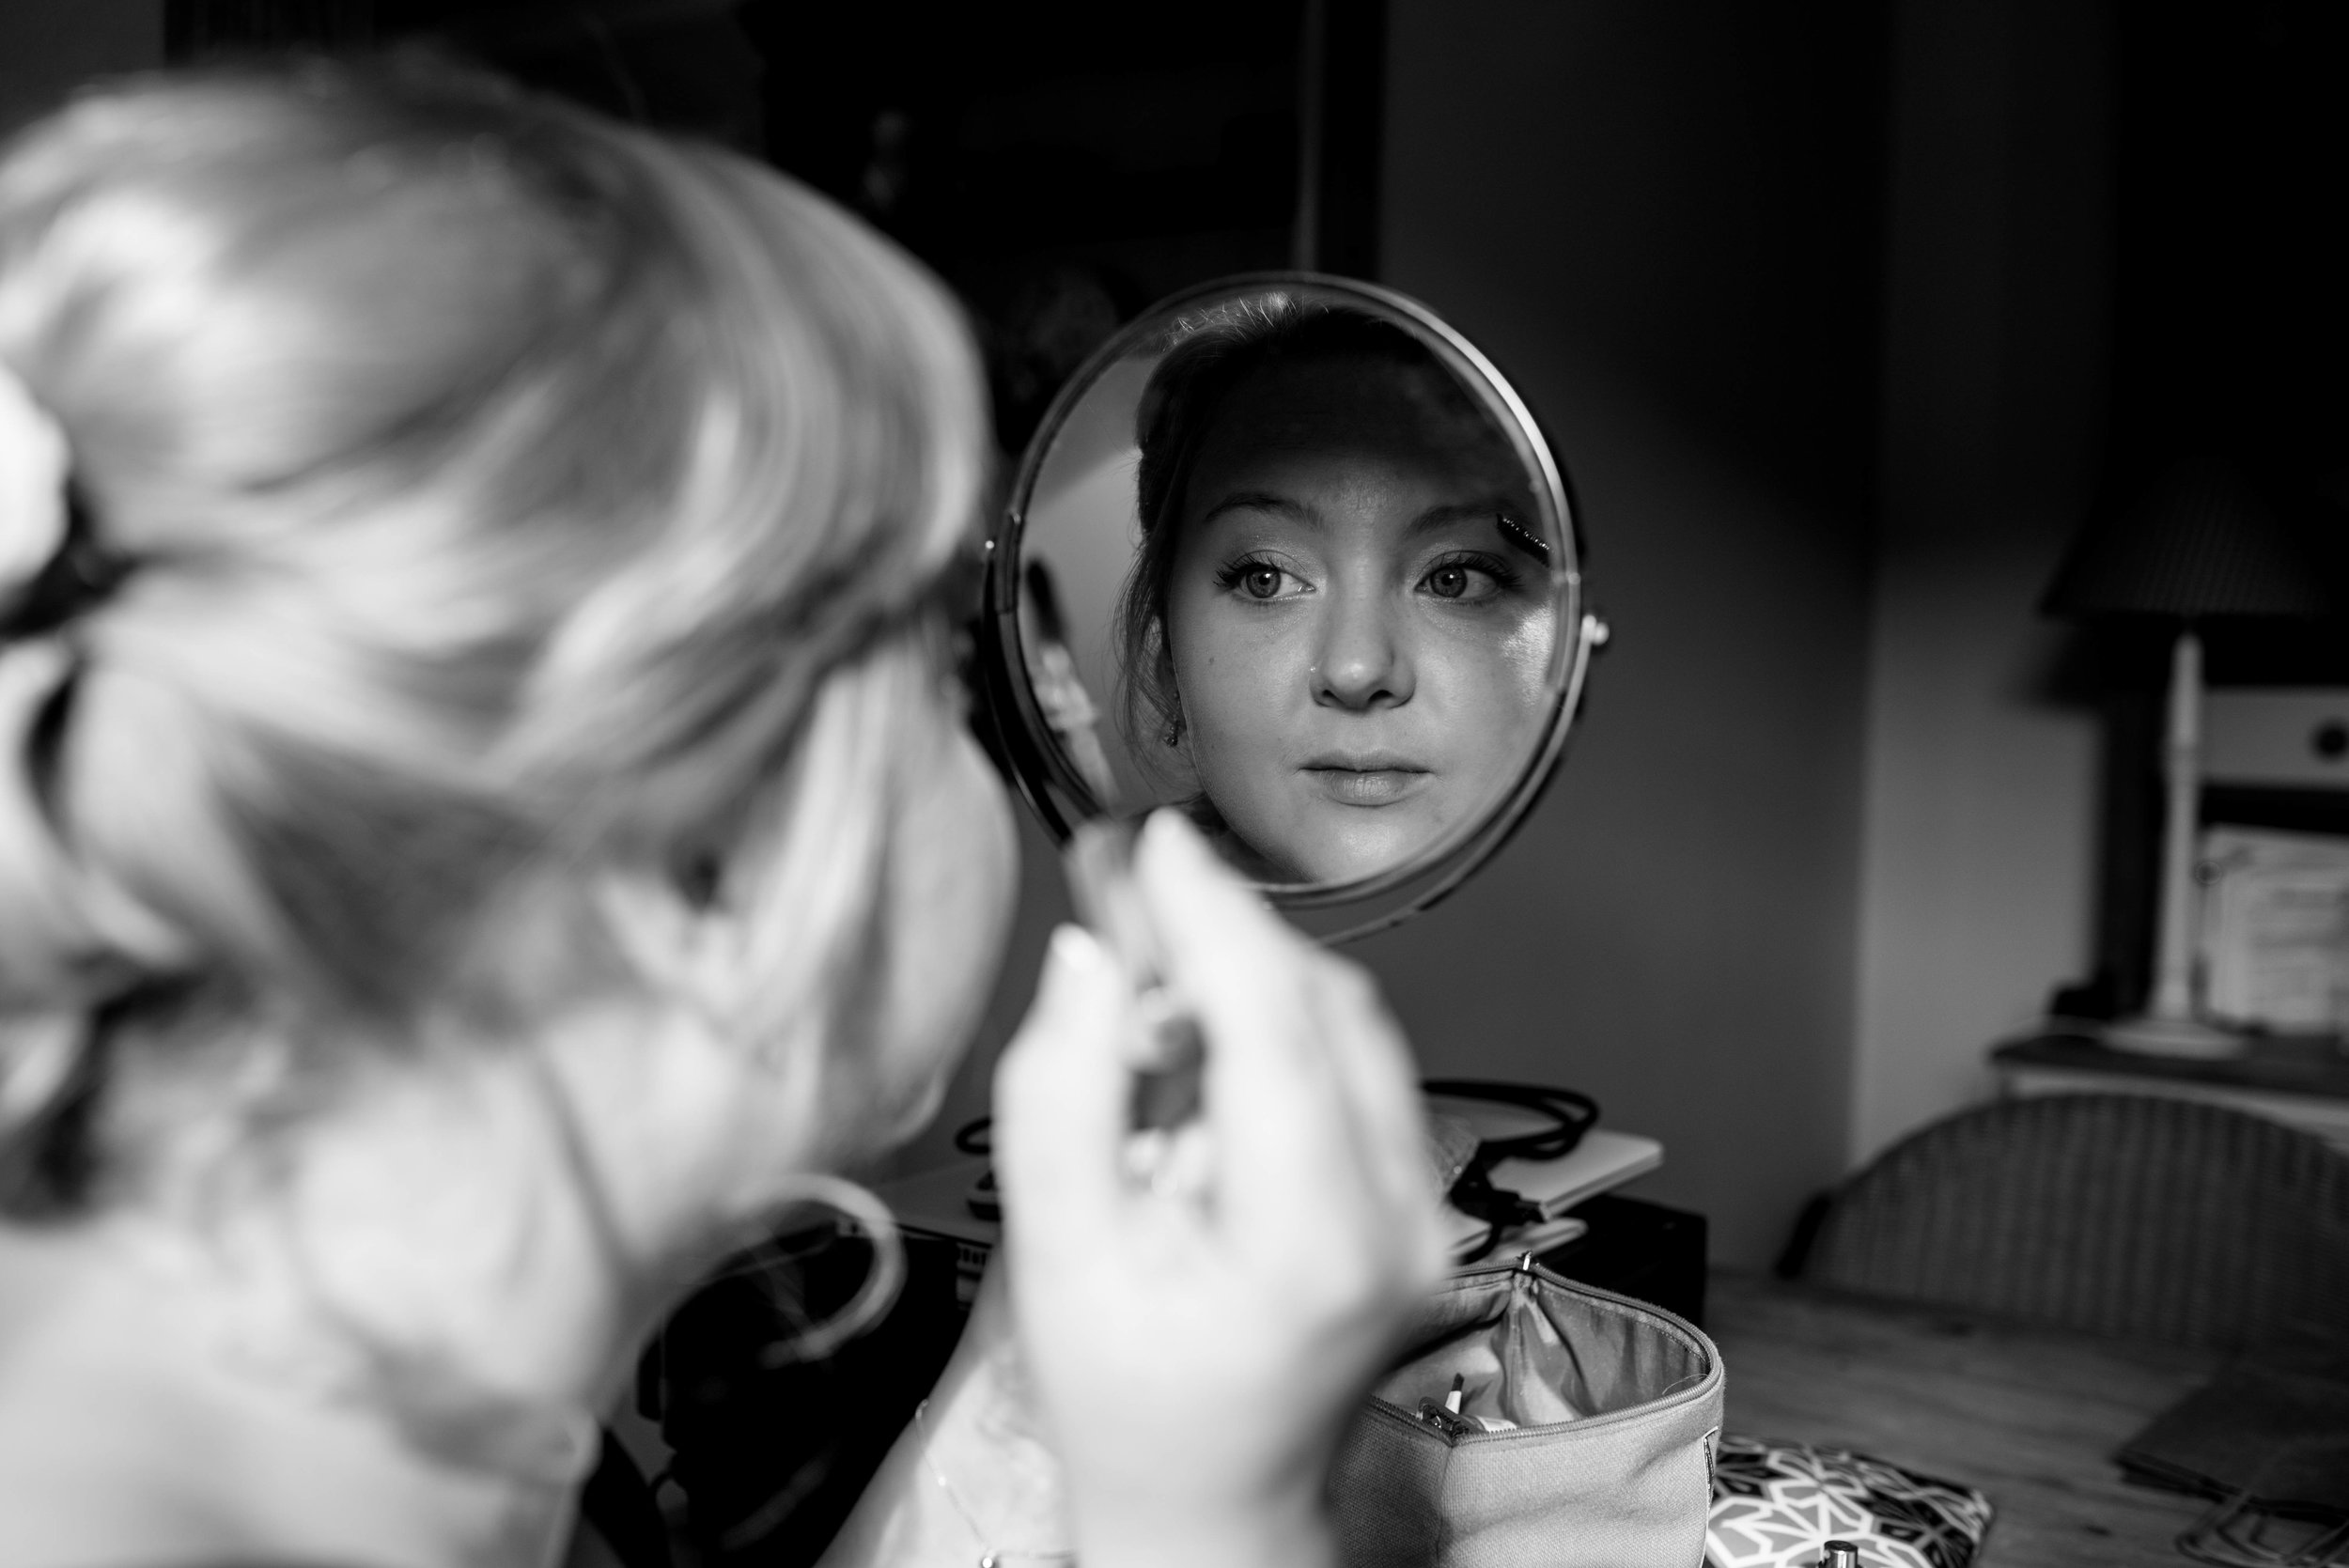 One of the bridemaids doing her makeup in a round mirror